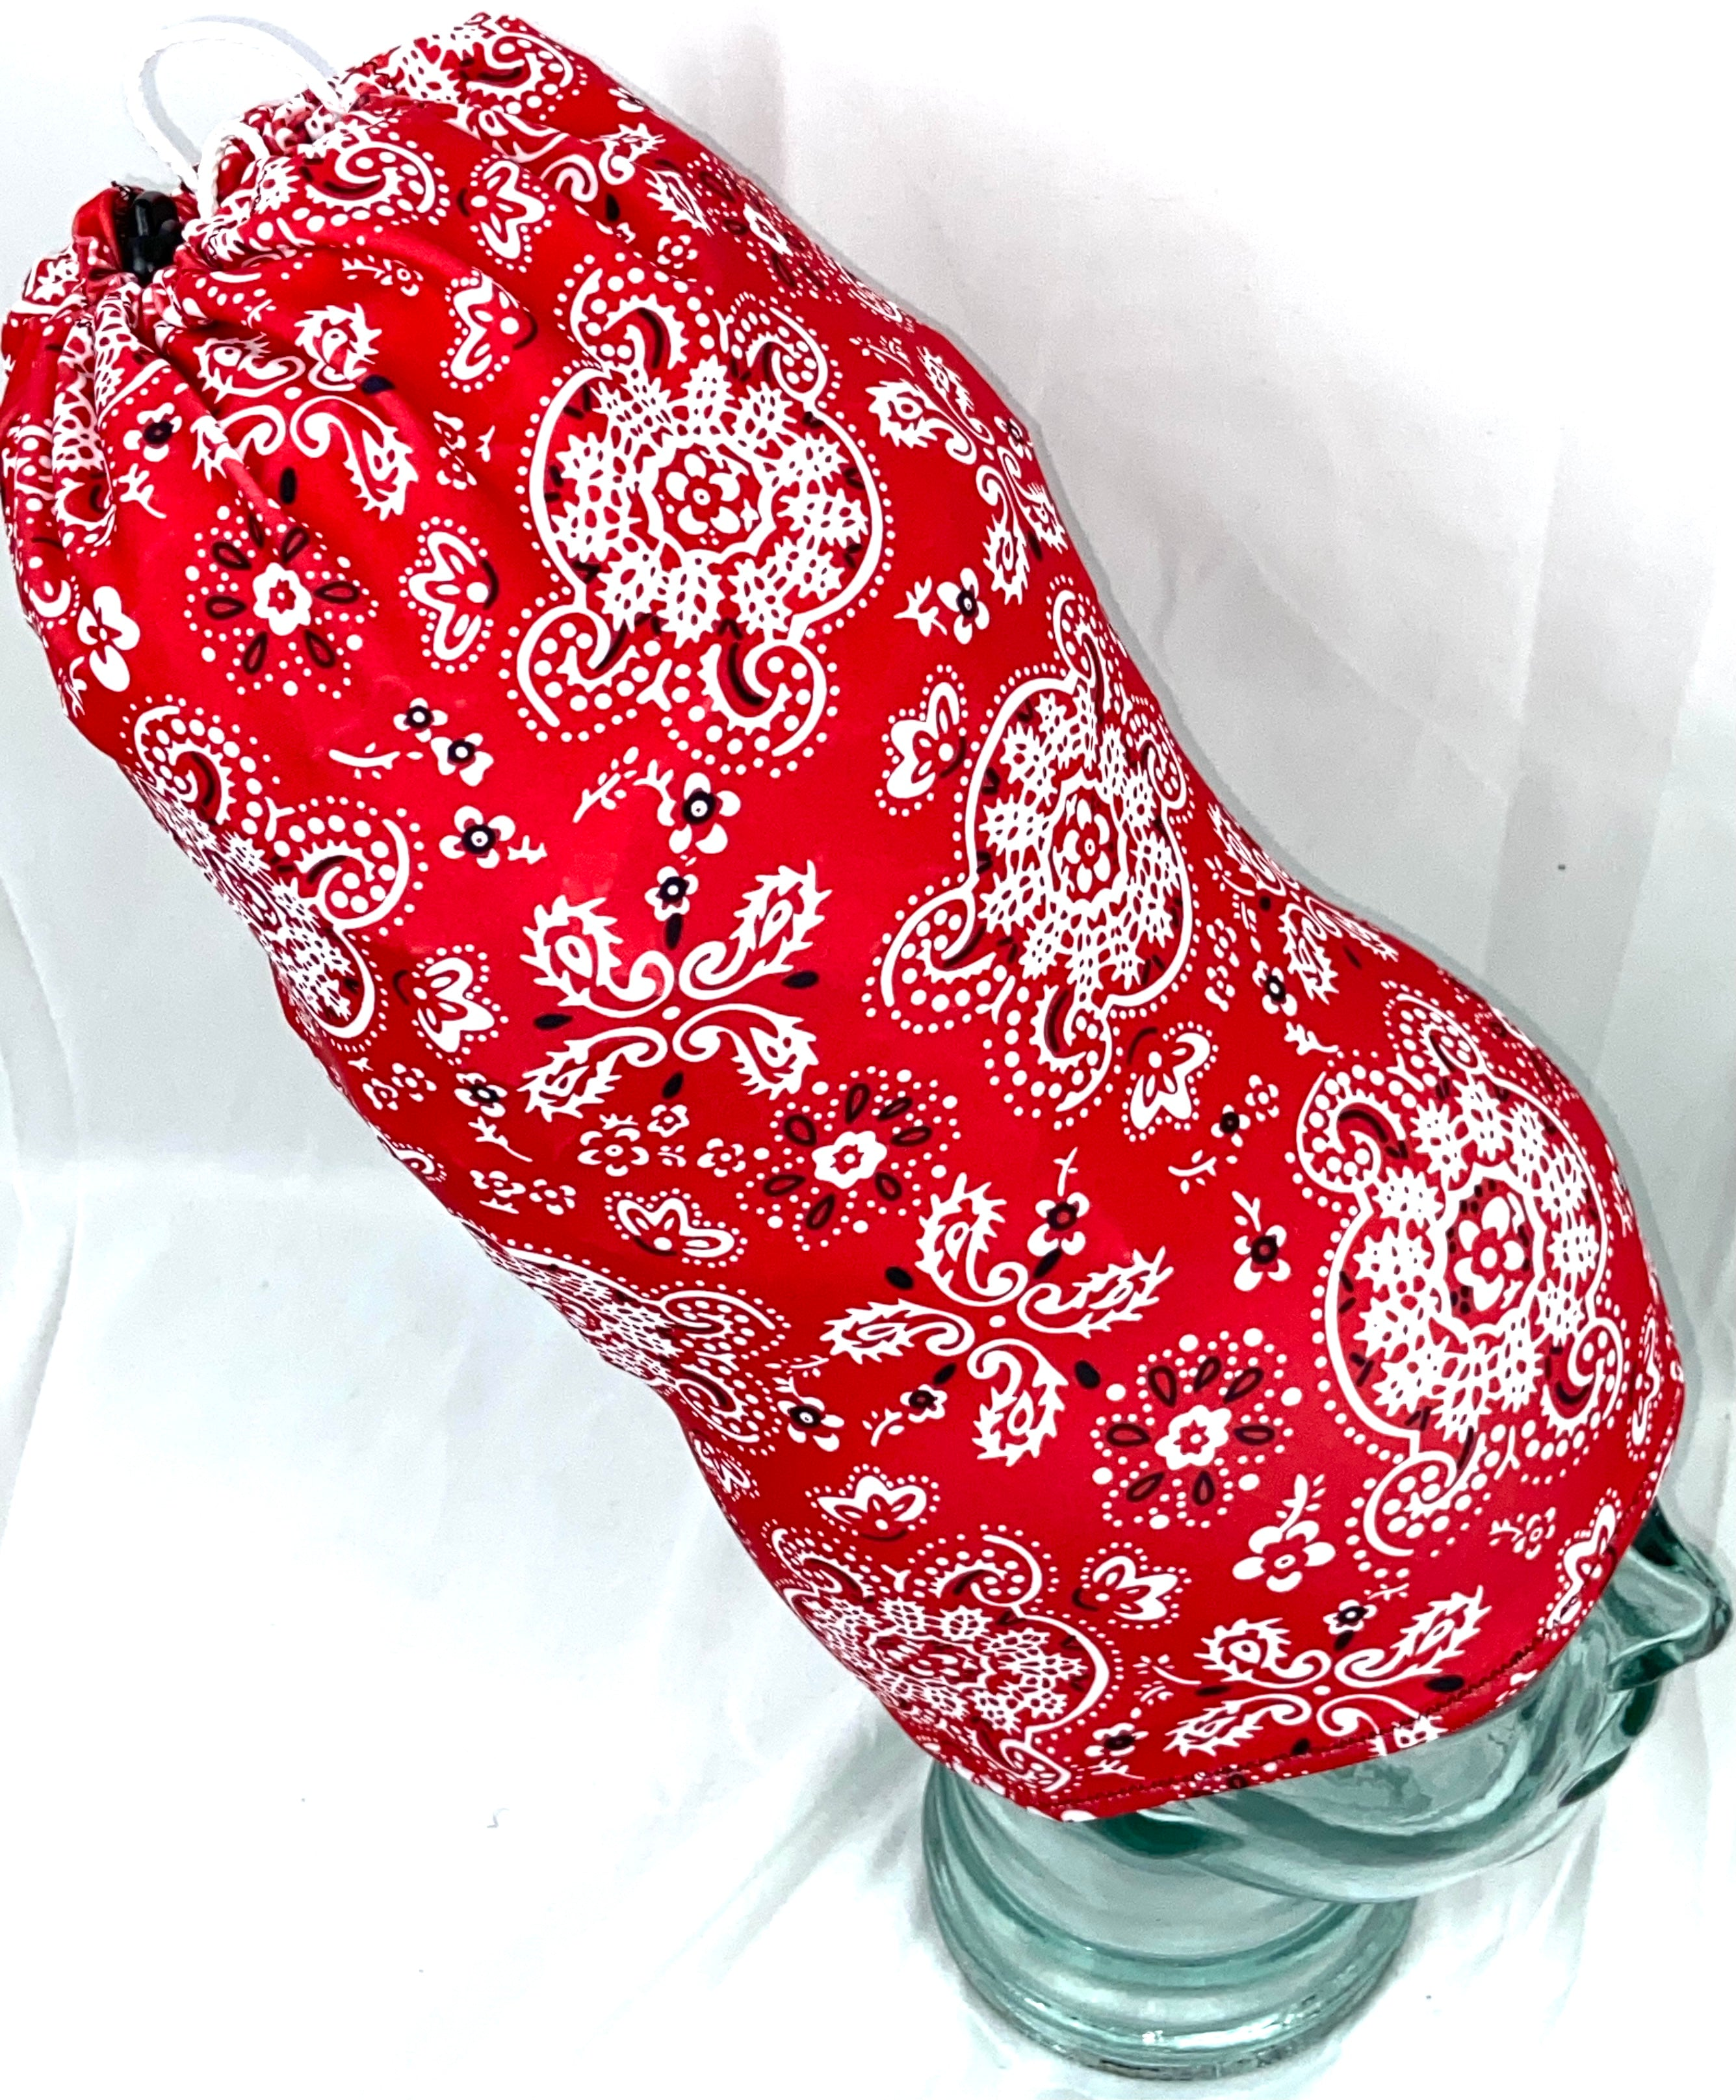 Stretchy headcovering Red Paisley